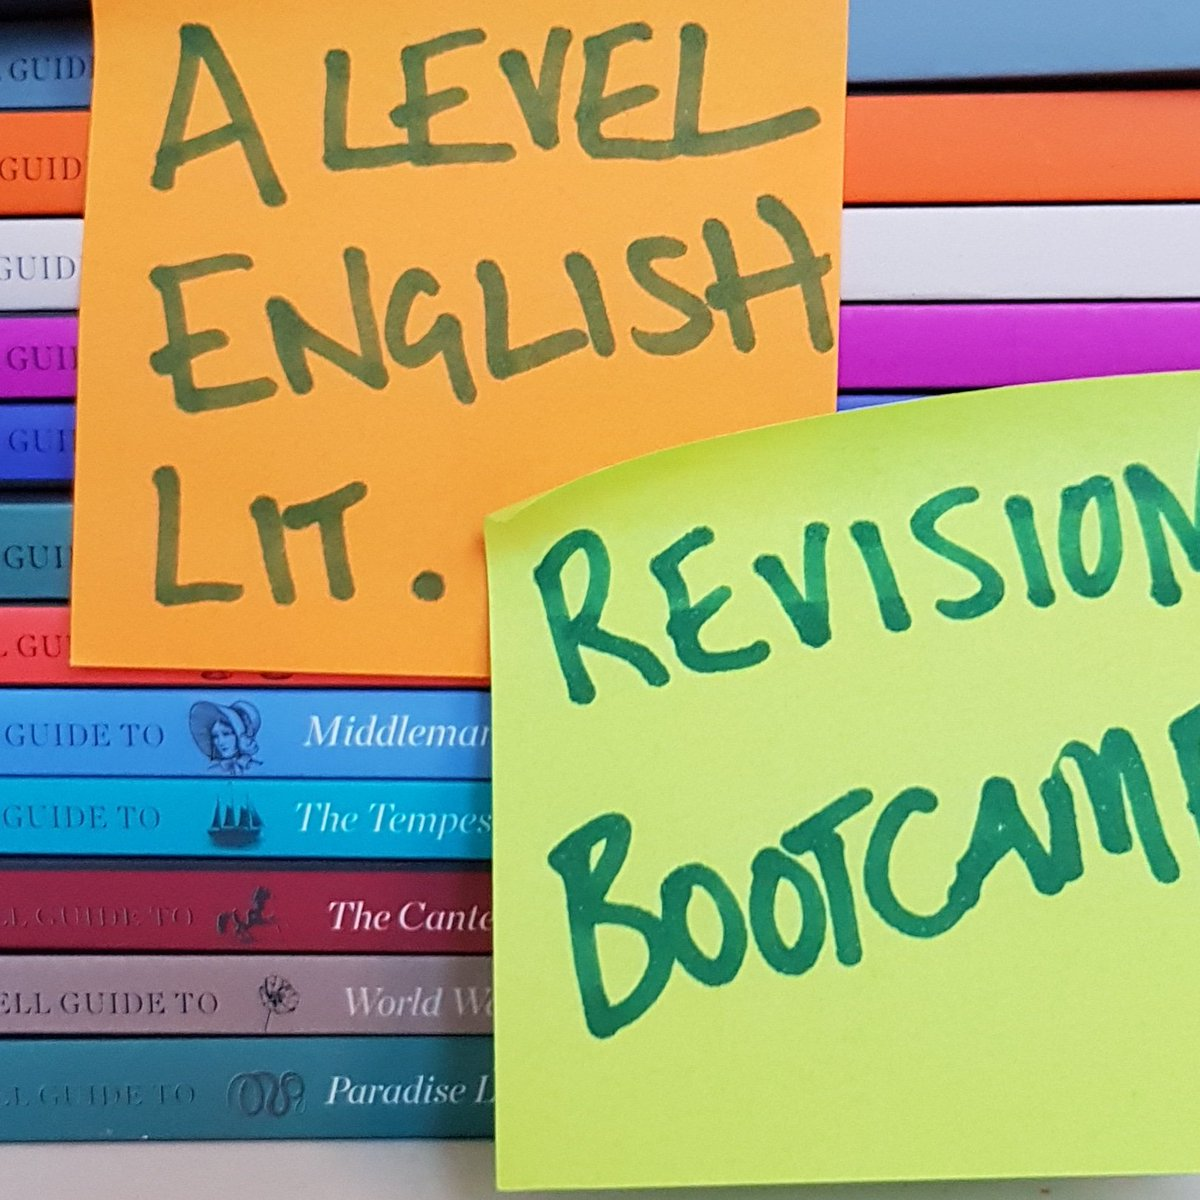 Thesis helpers review book page printable